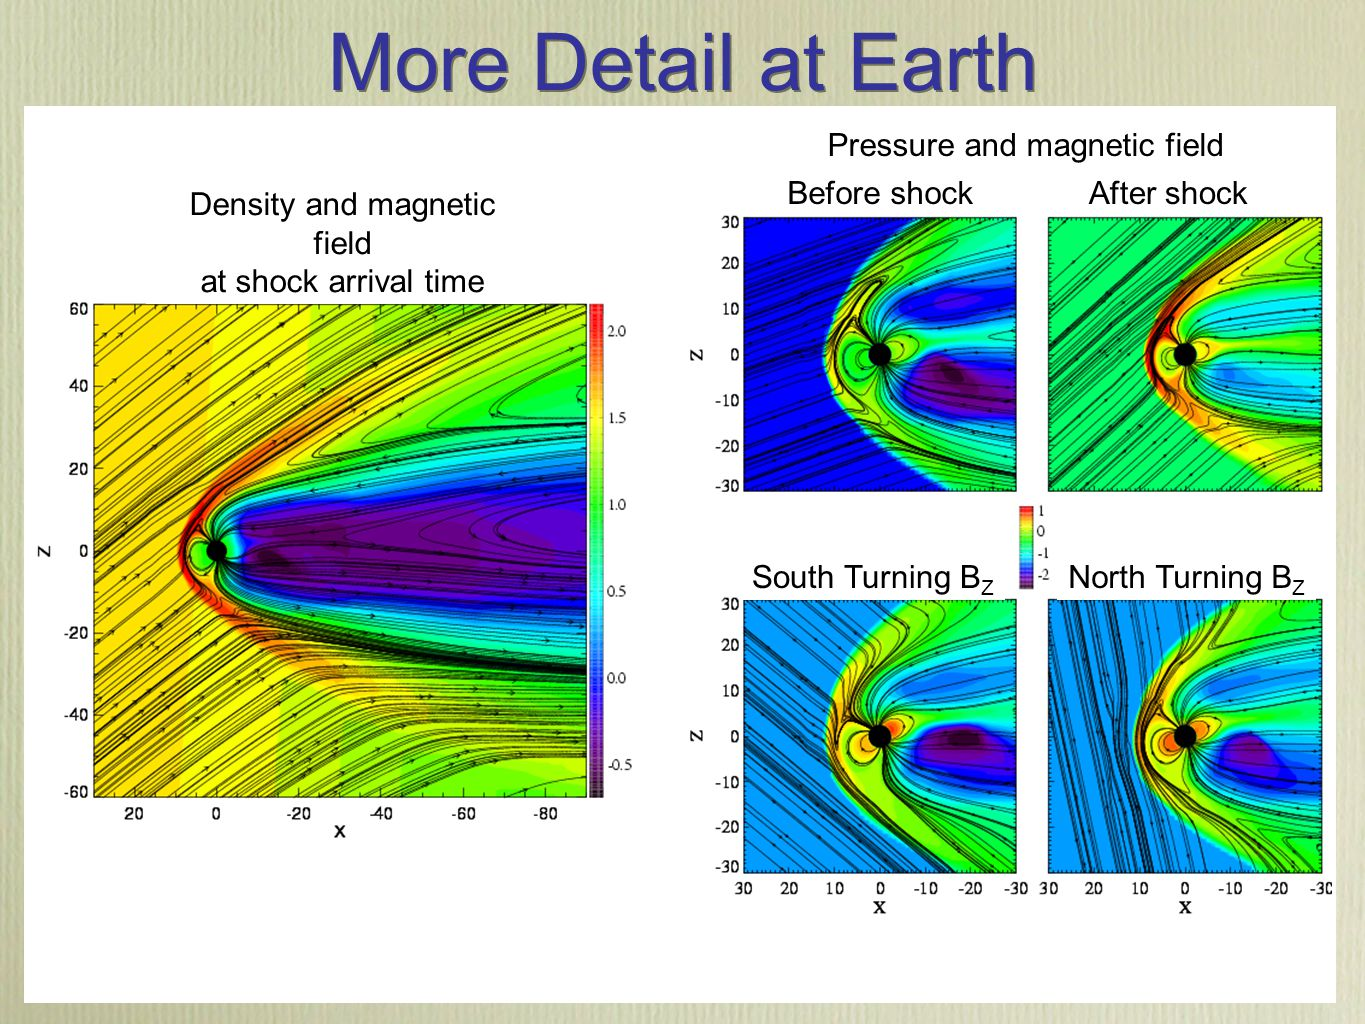 Center for Space Environment Modeling http://csem.engin.umich.edu More Detail at Earth Density and magnetic field at shock arrival time Before shockAfter shock South Turning B Z North Turning B Z Pressure and magnetic field